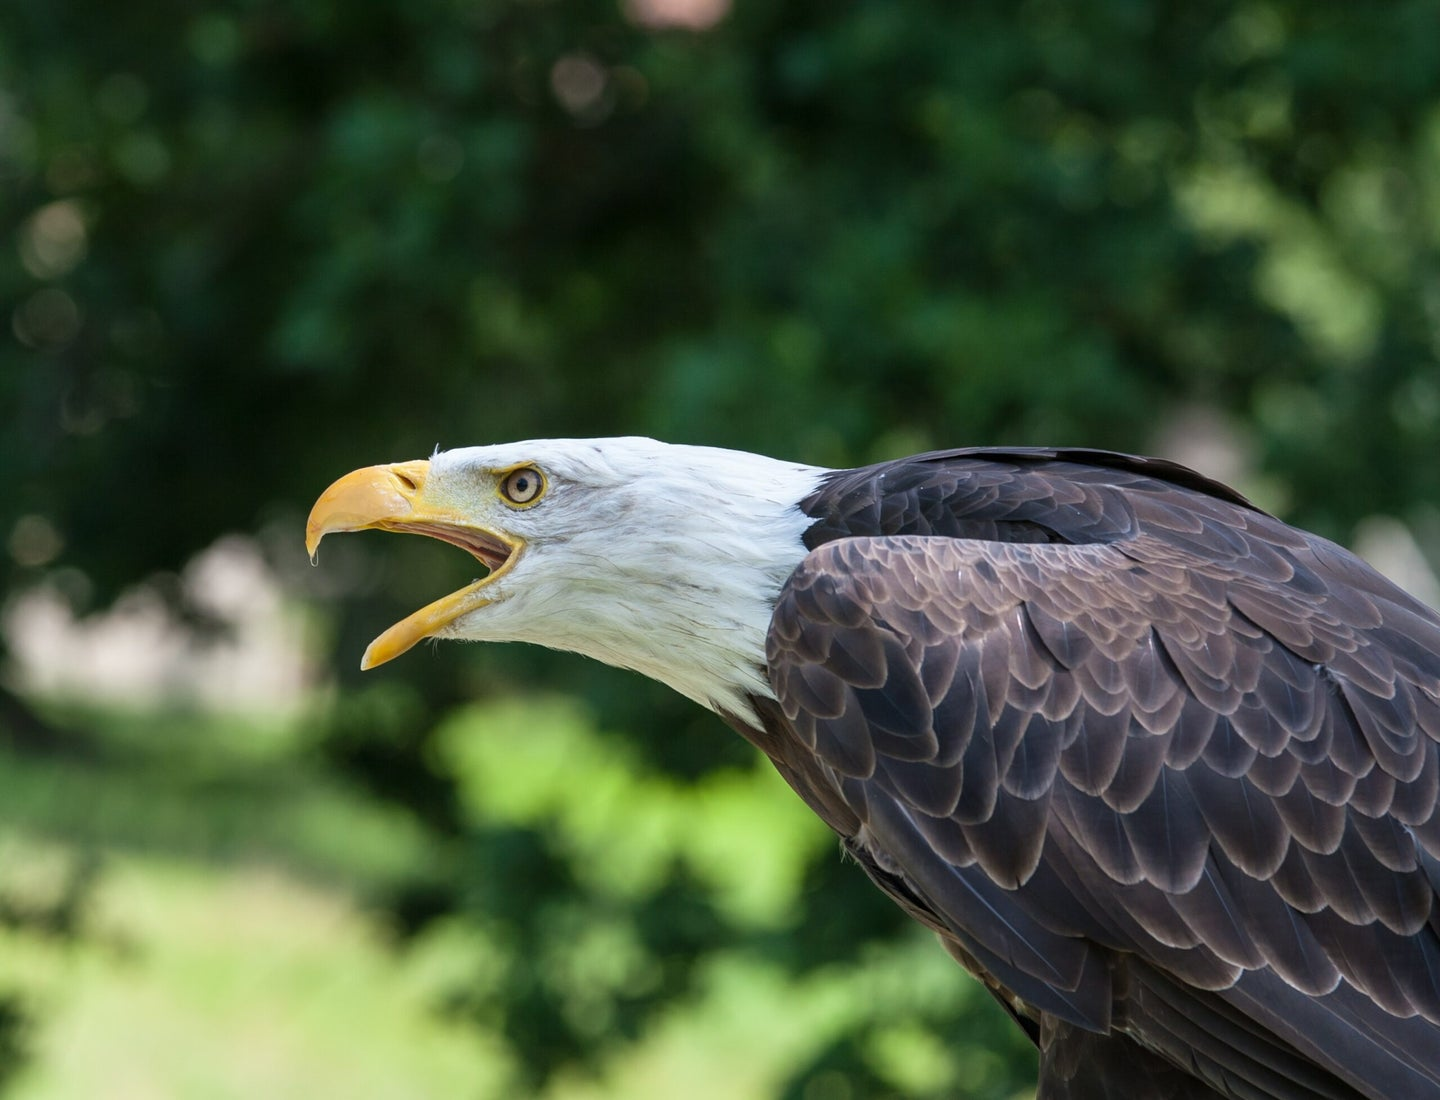 Trump is attacking the Endangered Species Act when we need it most